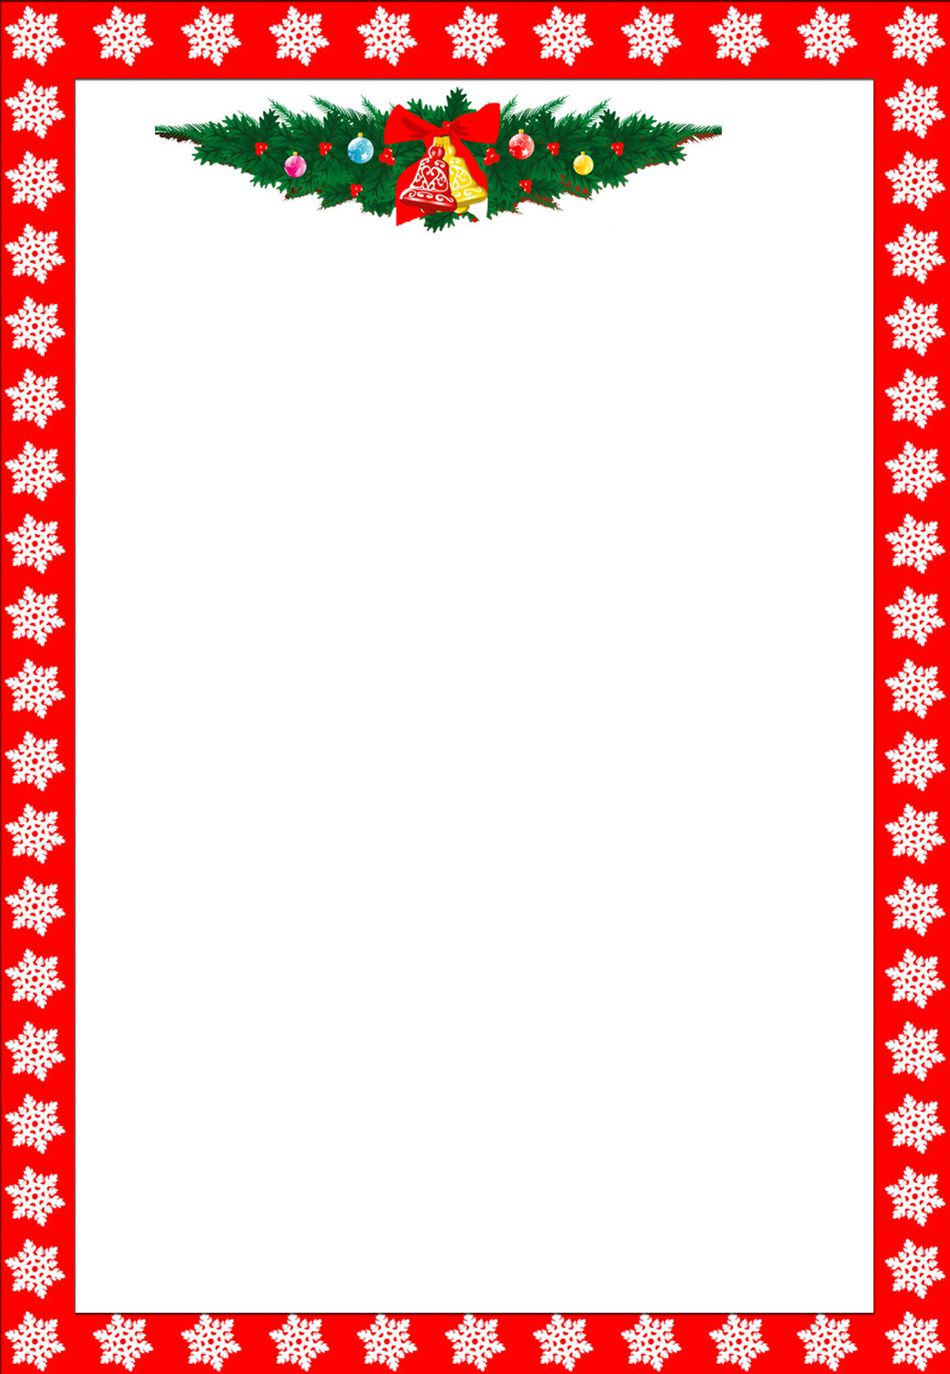 487 free christmas borders and frames christmas clip art borders from template spiritdancerdesigns Choice Image